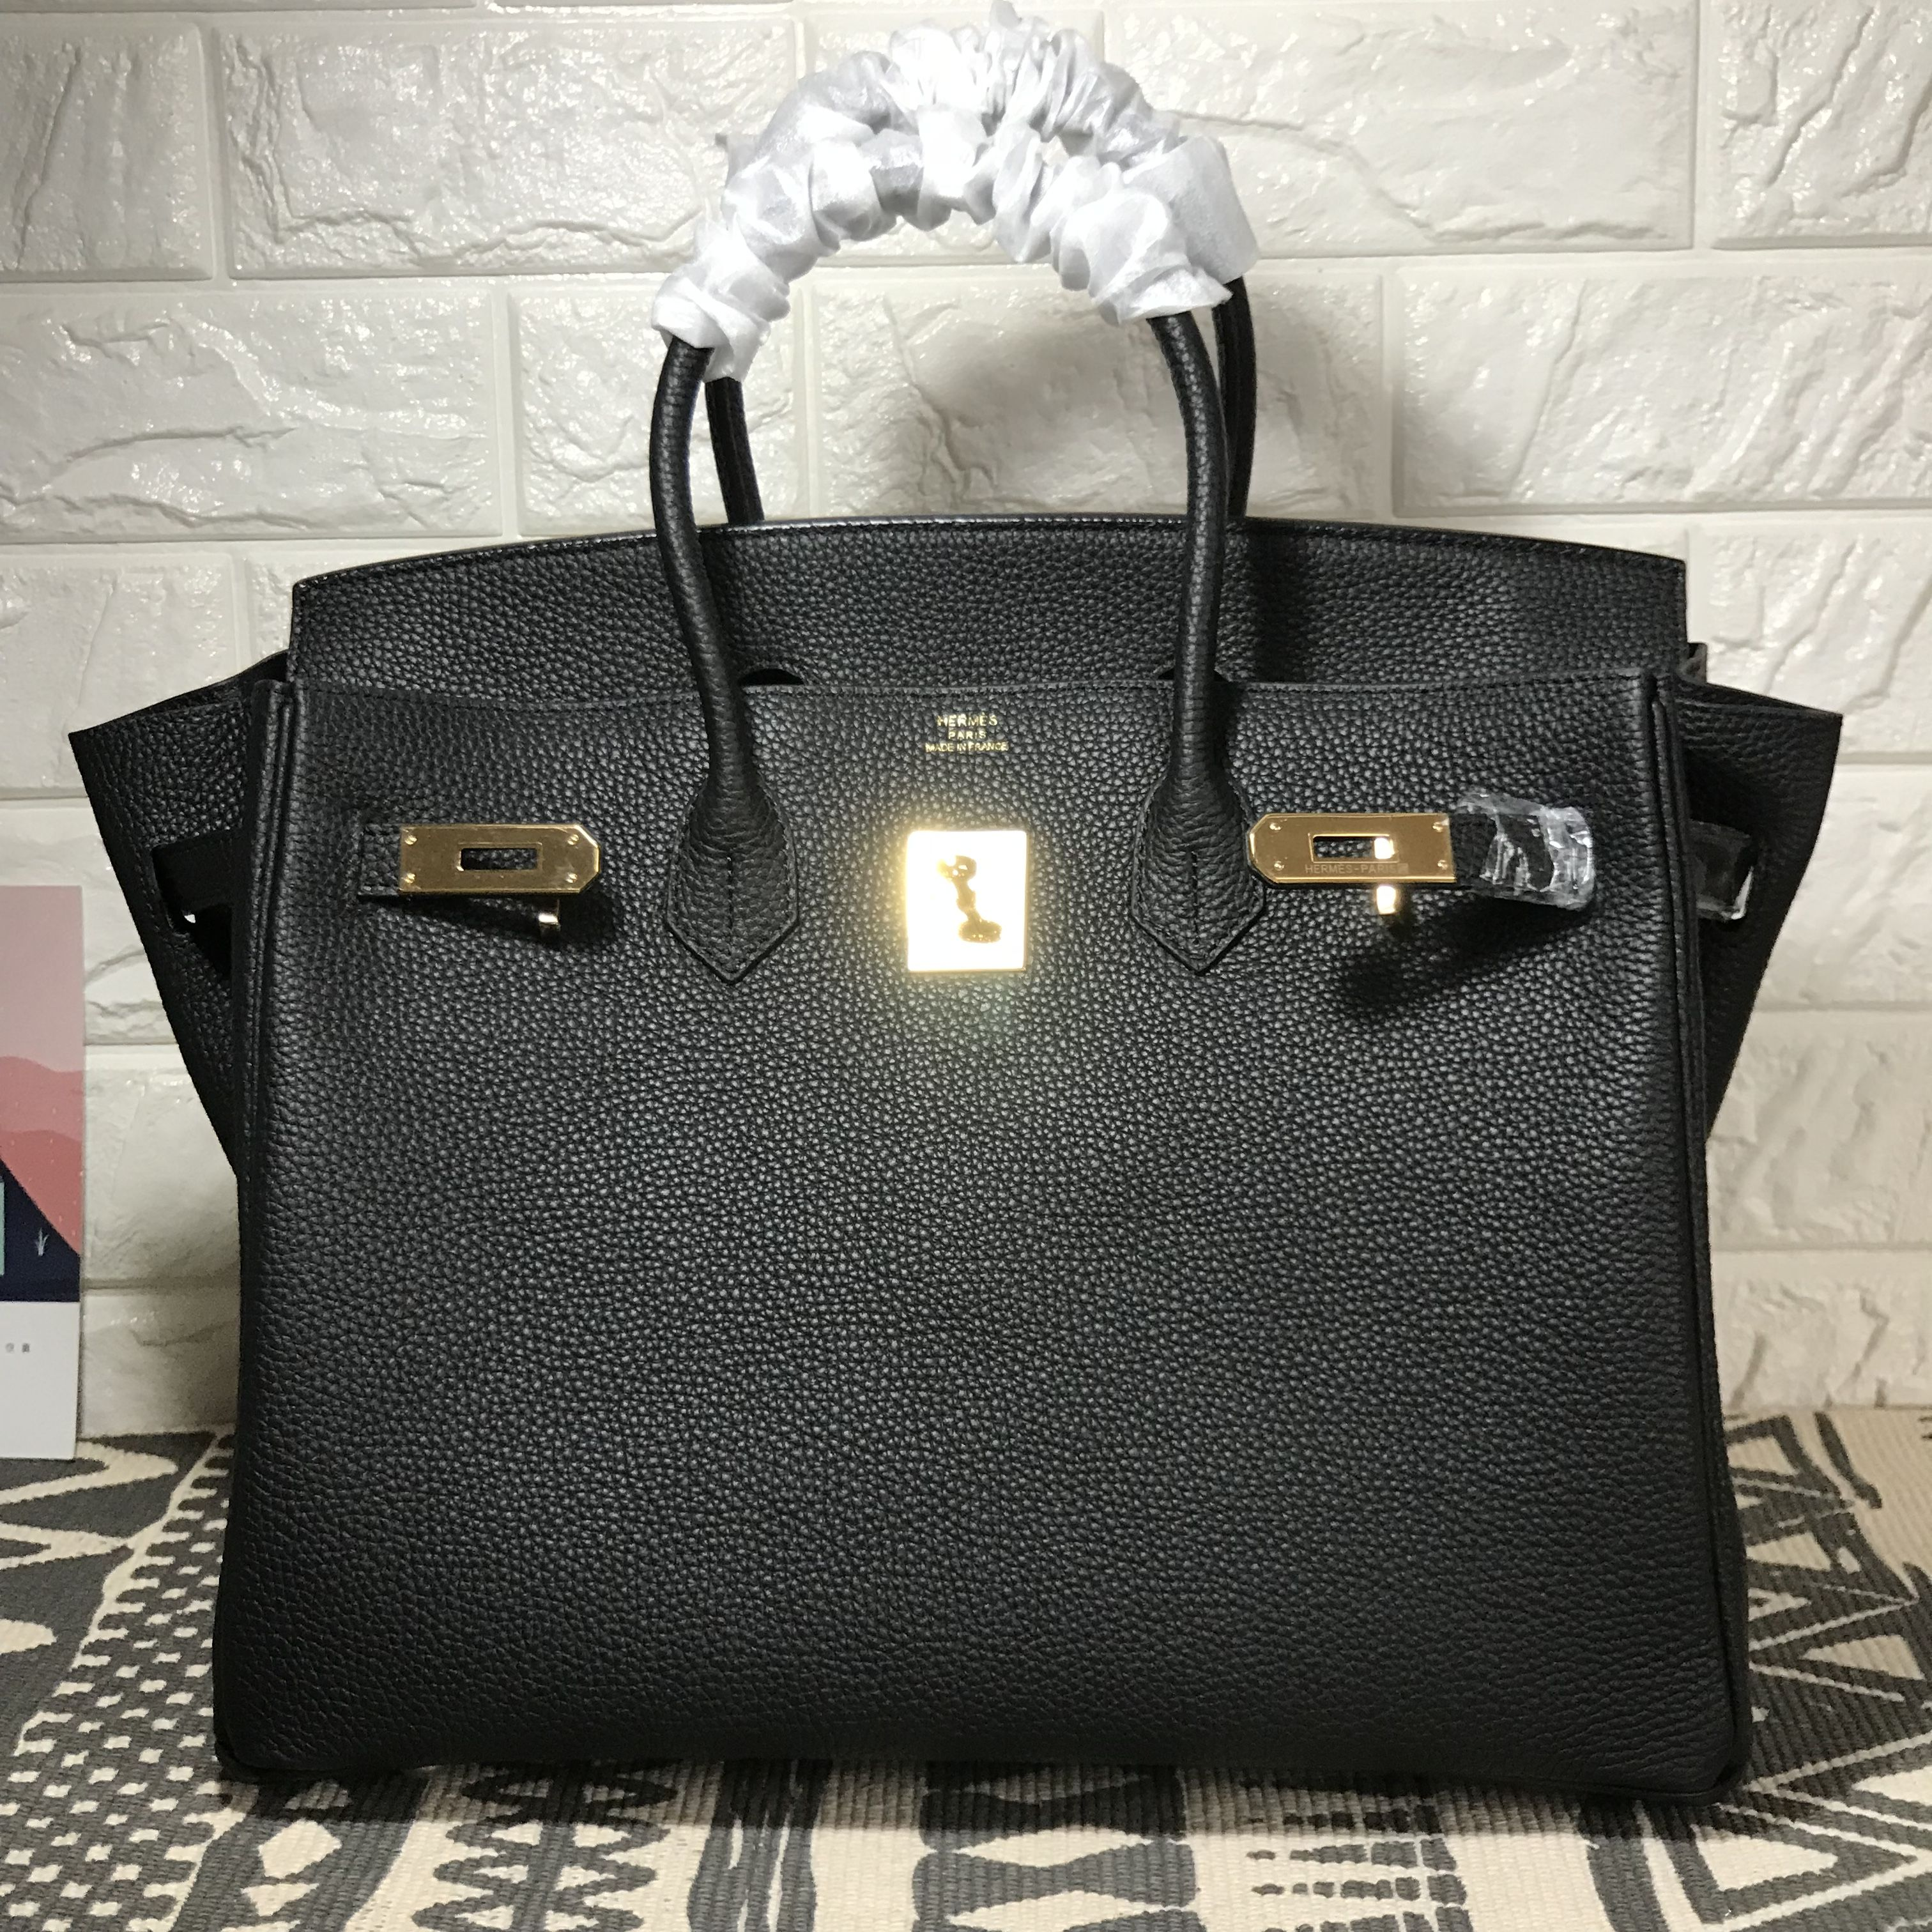 6868955fd64a ... free shipping hermes birkin togo leather black 35cm 2131d 86acc